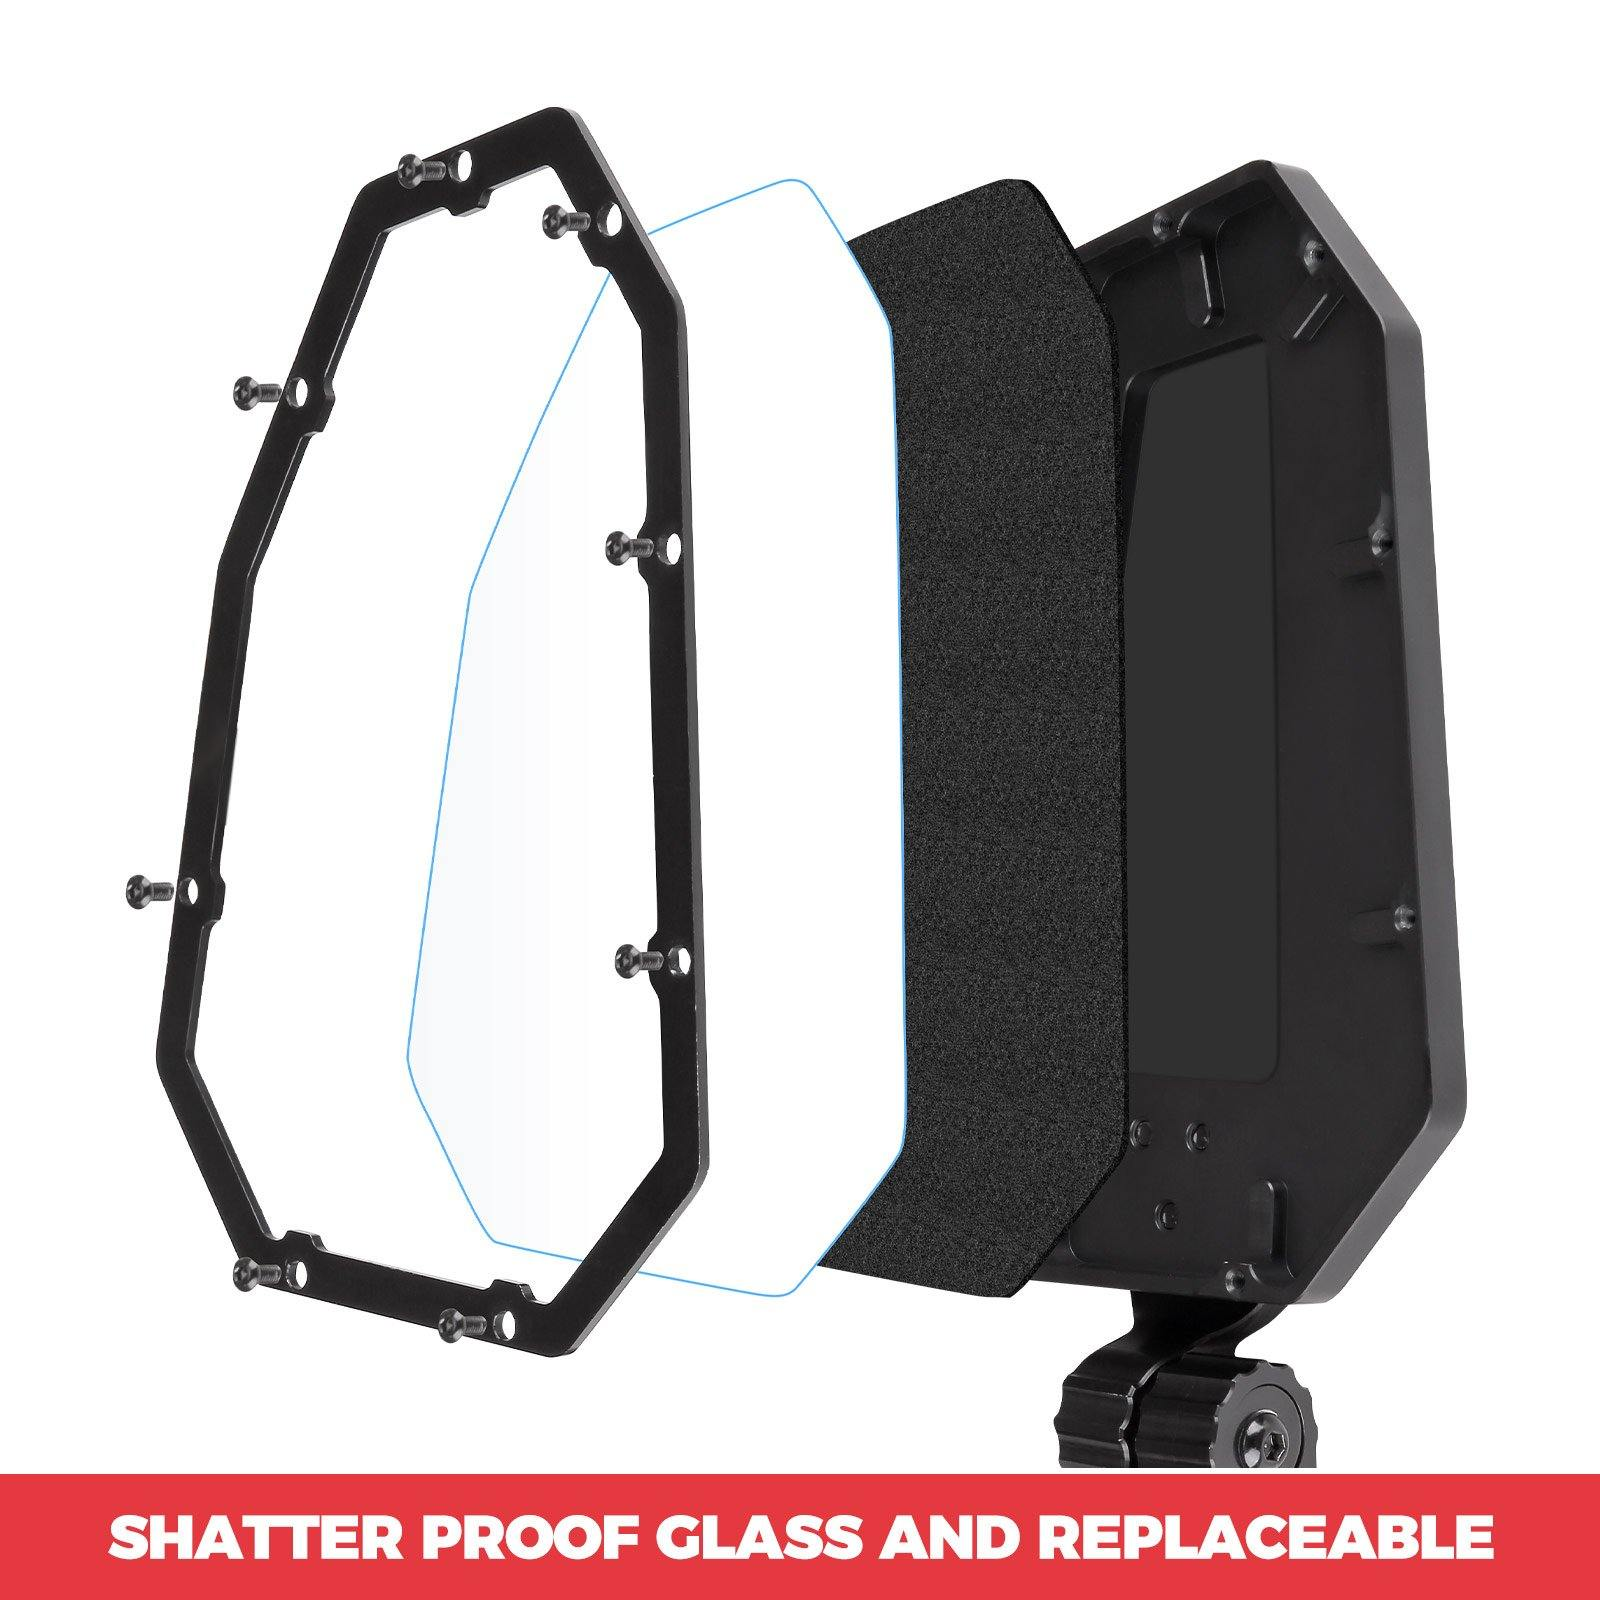 UTV Aluminum Side Mirrors with Pro-Fit Cage and Windshield - KEMIMOTO